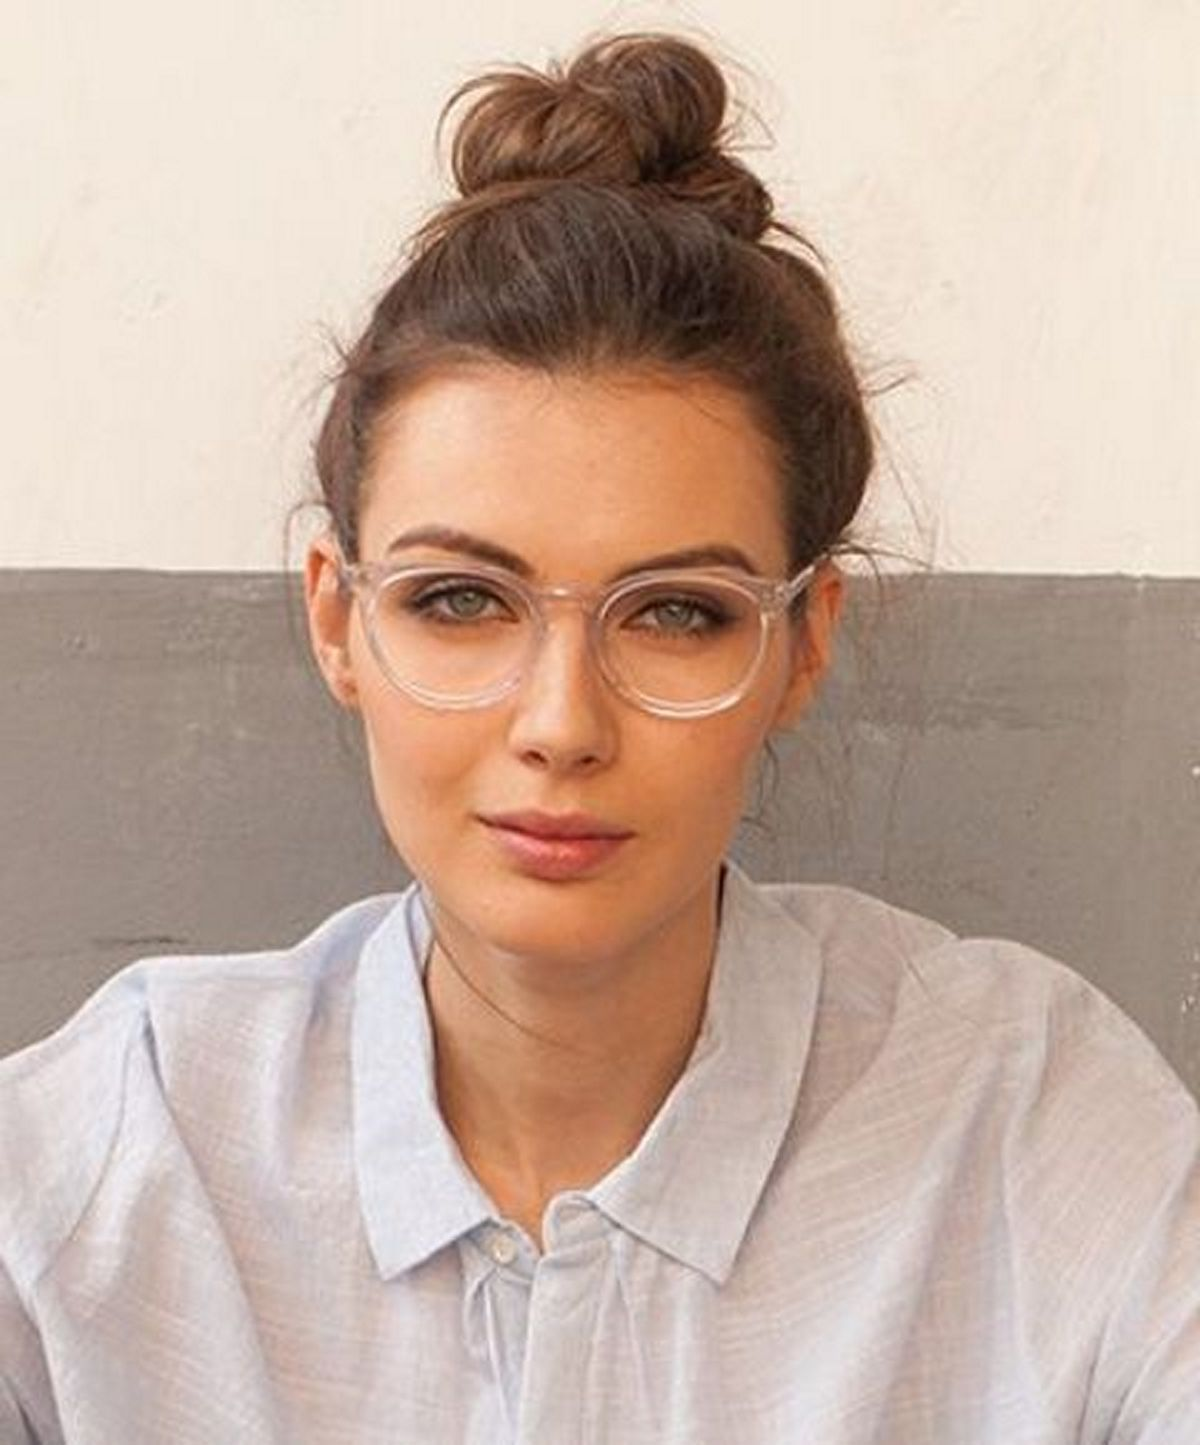 10a4bc6147bc Clear Glasses Frame For Women's Fashion Ideas #Transparent #Eyeglass (16)